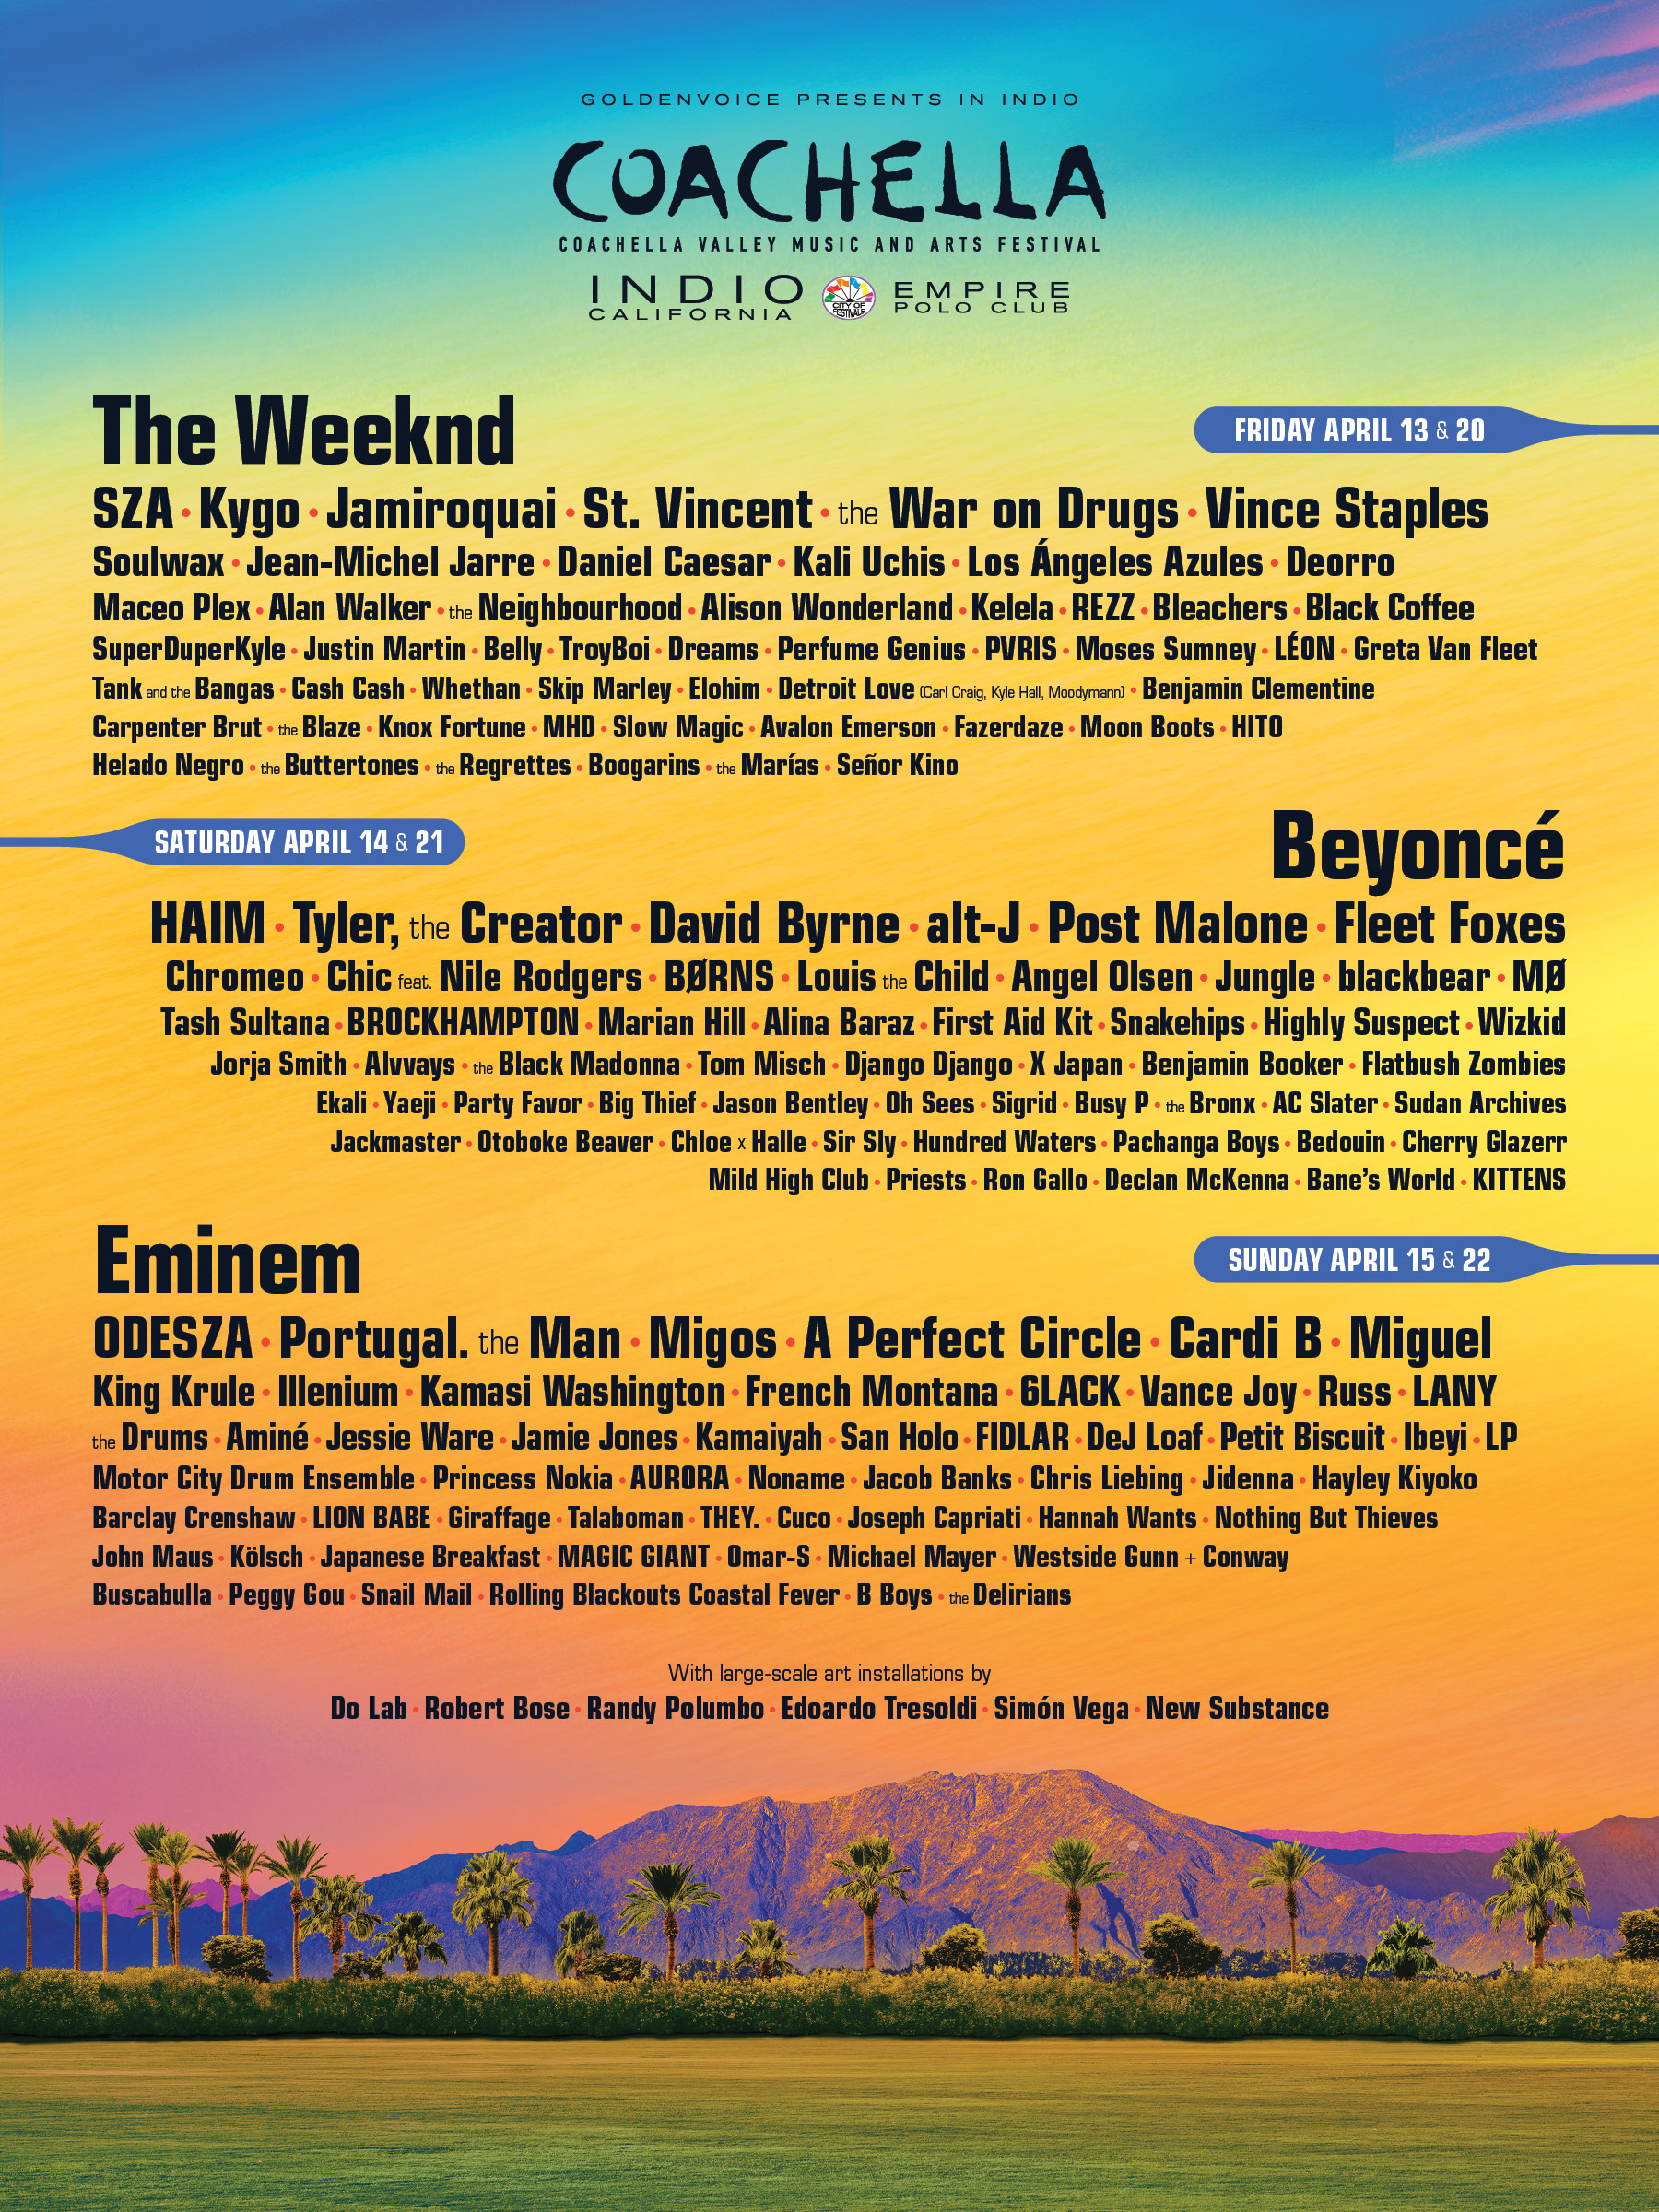 Coachella locks Maceo Plex, Jackmaster, Jamie Jones, Hannah Wants, Omar-S, more